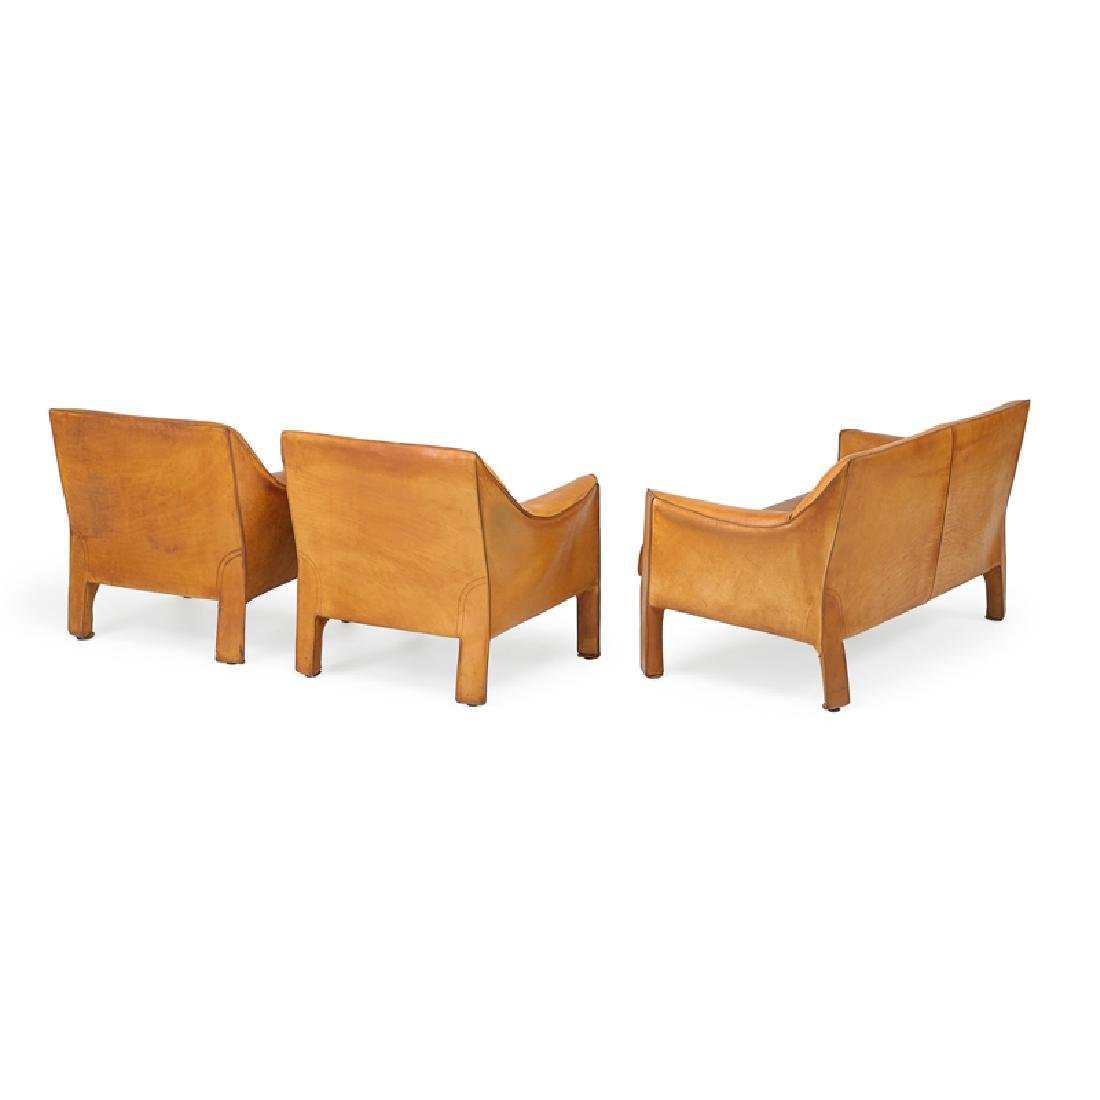 MARIO BELLINI Cab love seat, pr. of lounge chairs - 2